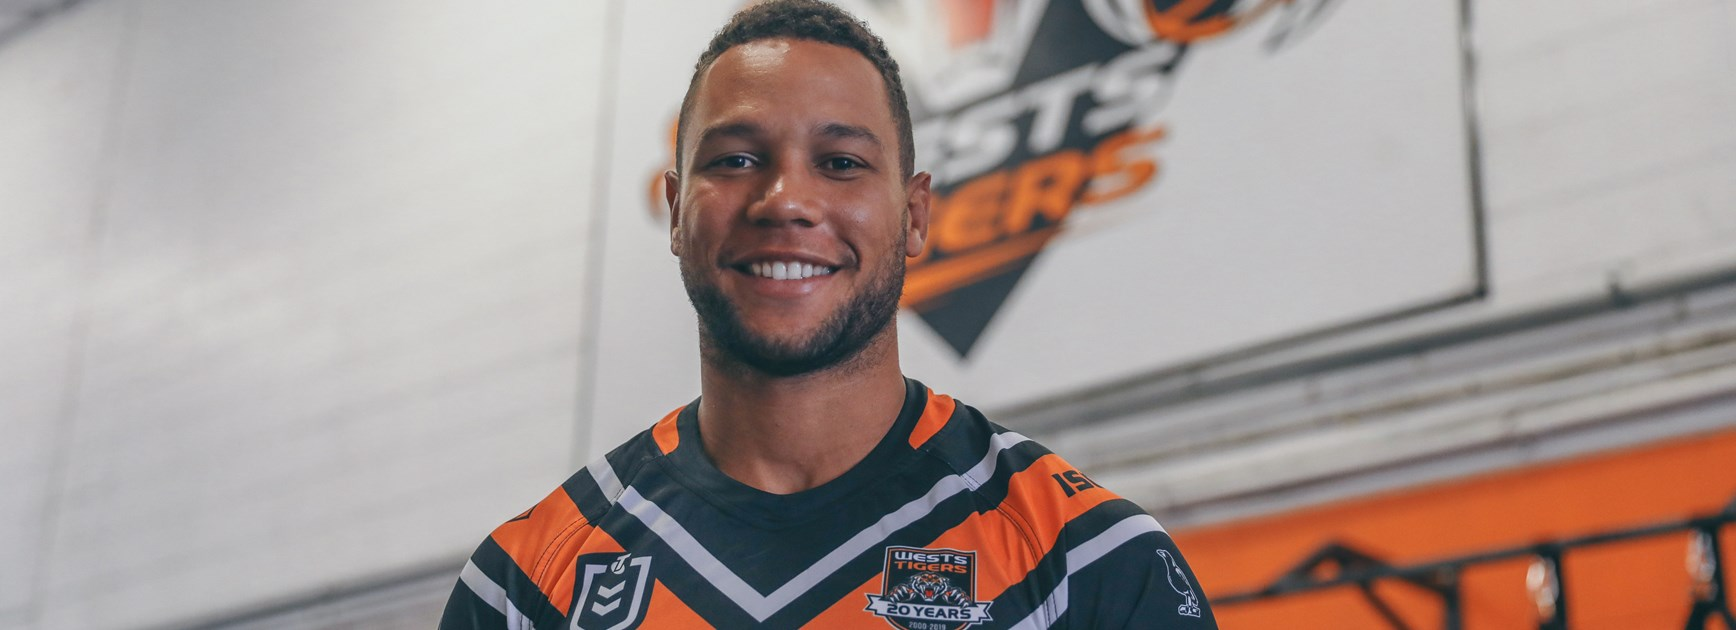 Watch Wests Tigers take on the Warriors LIVE this Saturday!